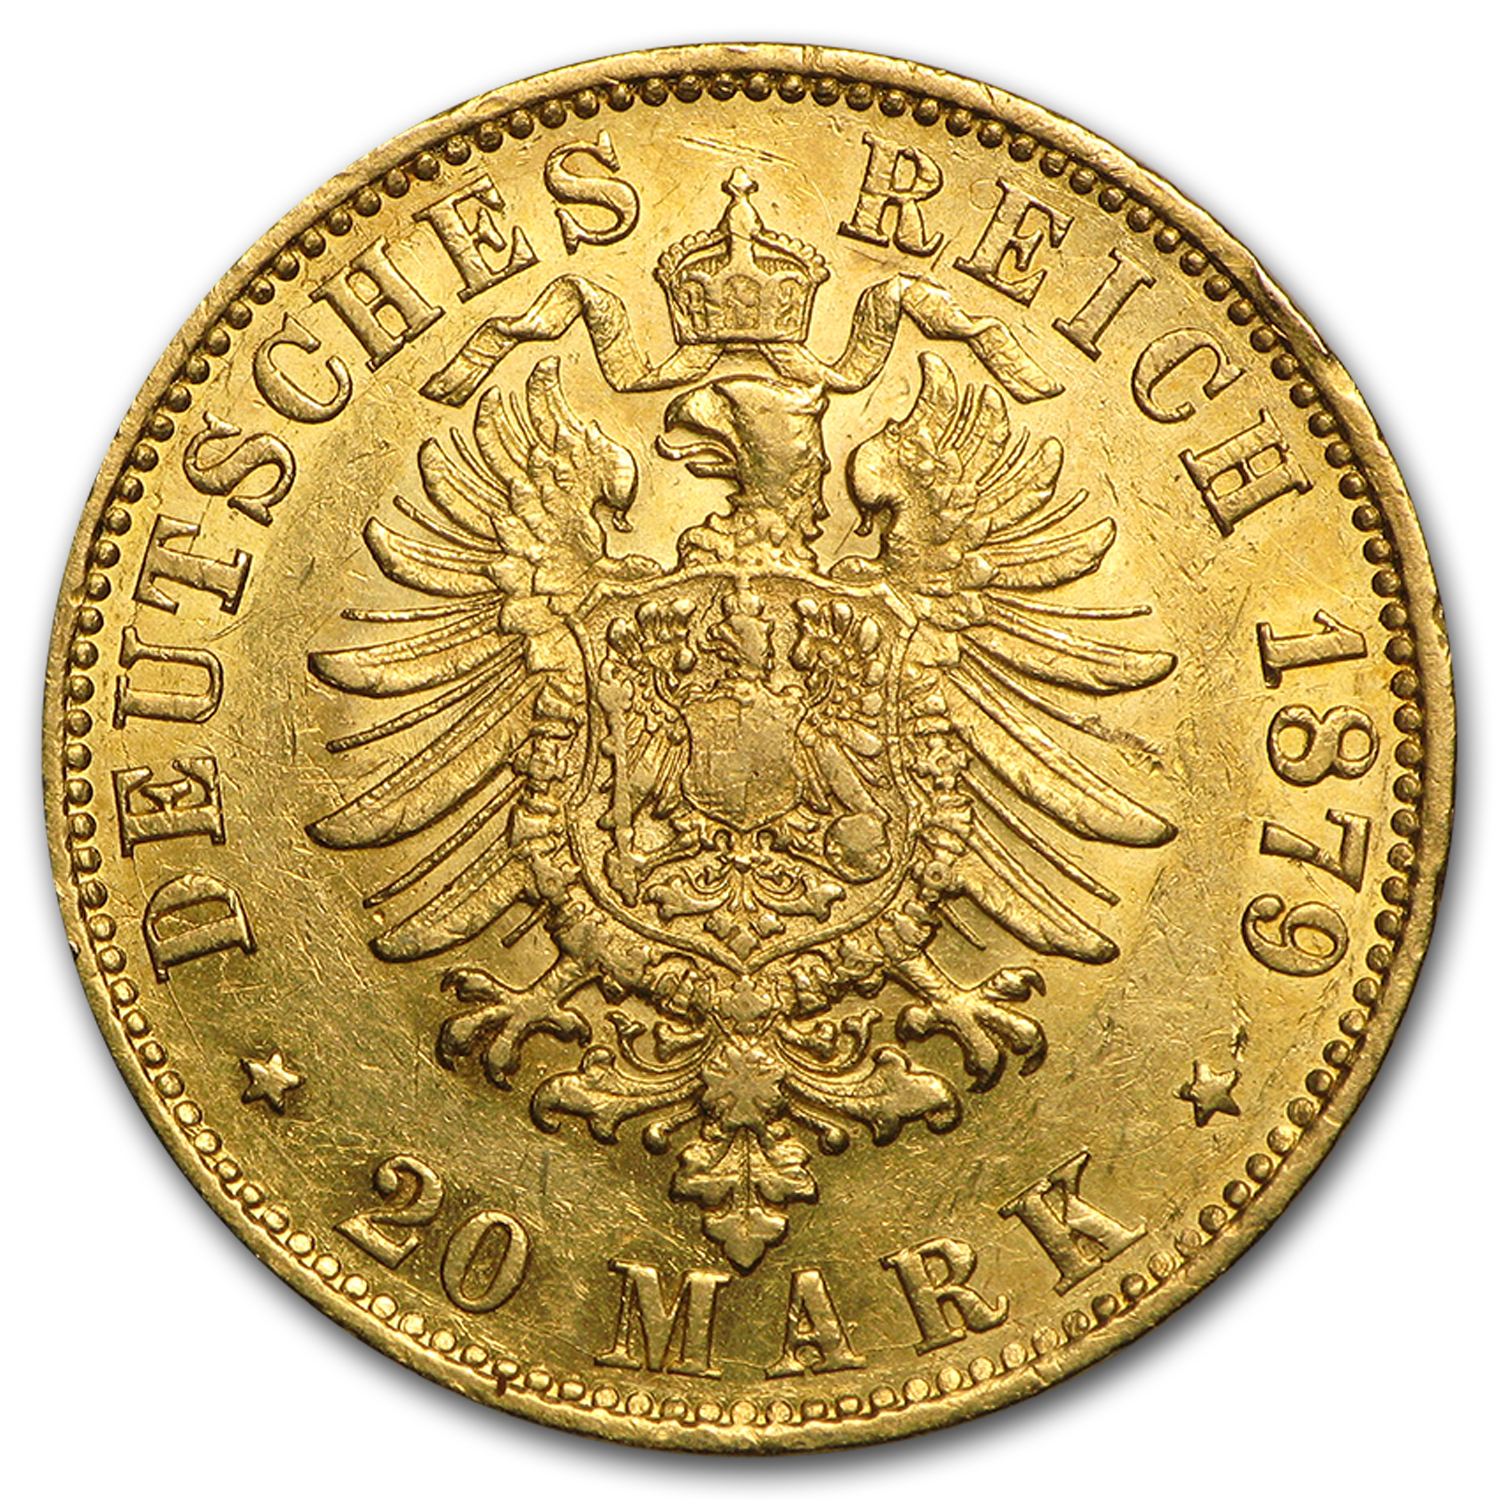 Germany Gold 20 Marks (Hamburg) (Avg Circulated)